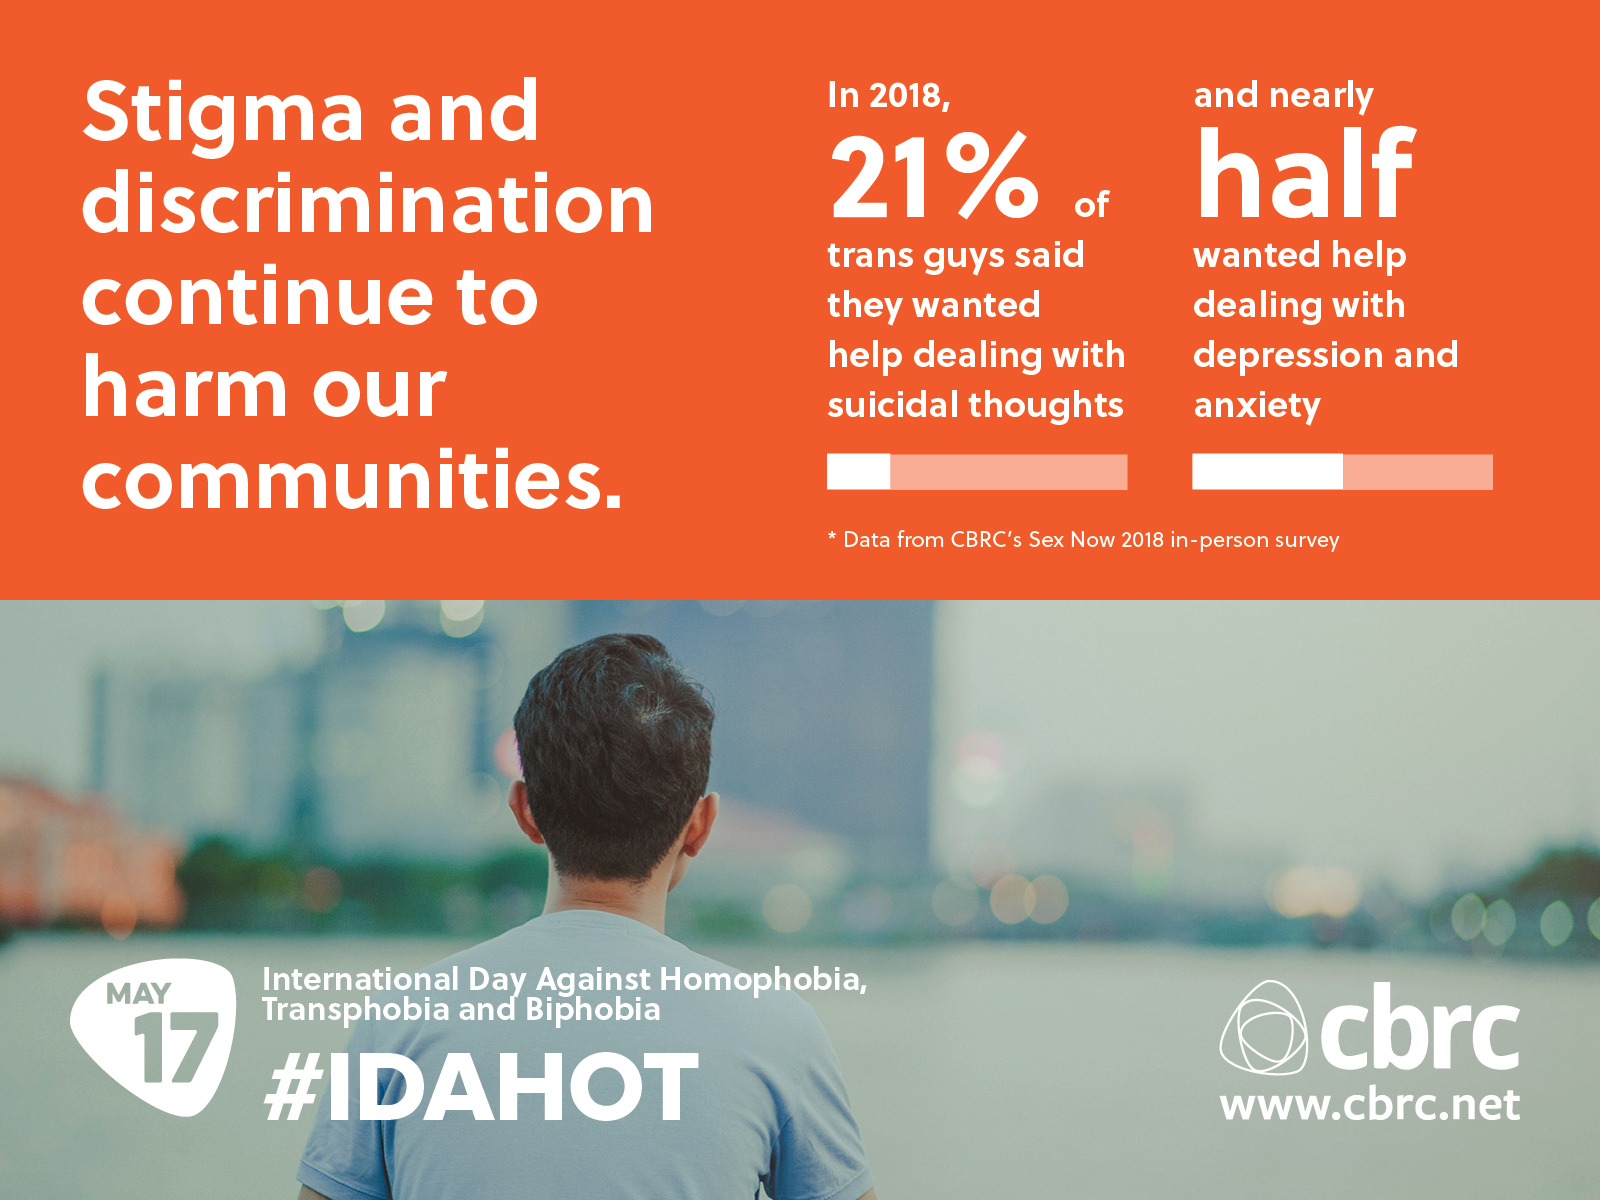 Infographic reads: Stigma and discrimination continue to harm our communities. In 2018, 21% of trans guys said they wanted help dealing with suicidal thoughts and nearly half wanted help dealing with depression and anxiety.\